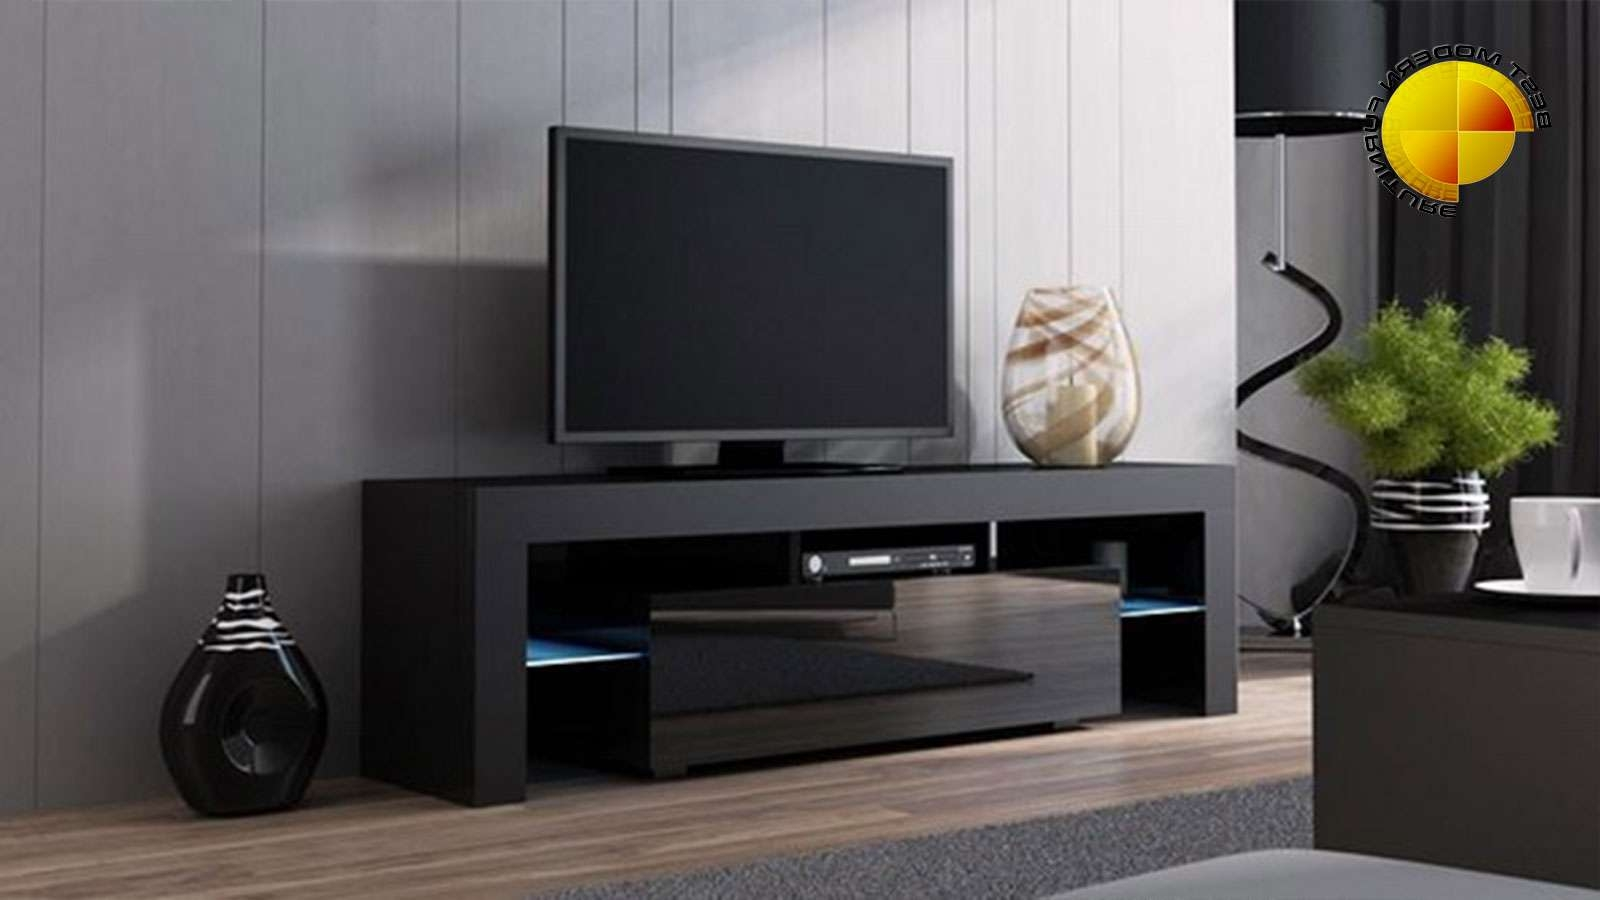 Modern Tv Stand 160Cm High Gloss Cabinet Rgb Led Lights Black Unit With Modern Tv Stands (View 11 of 15)